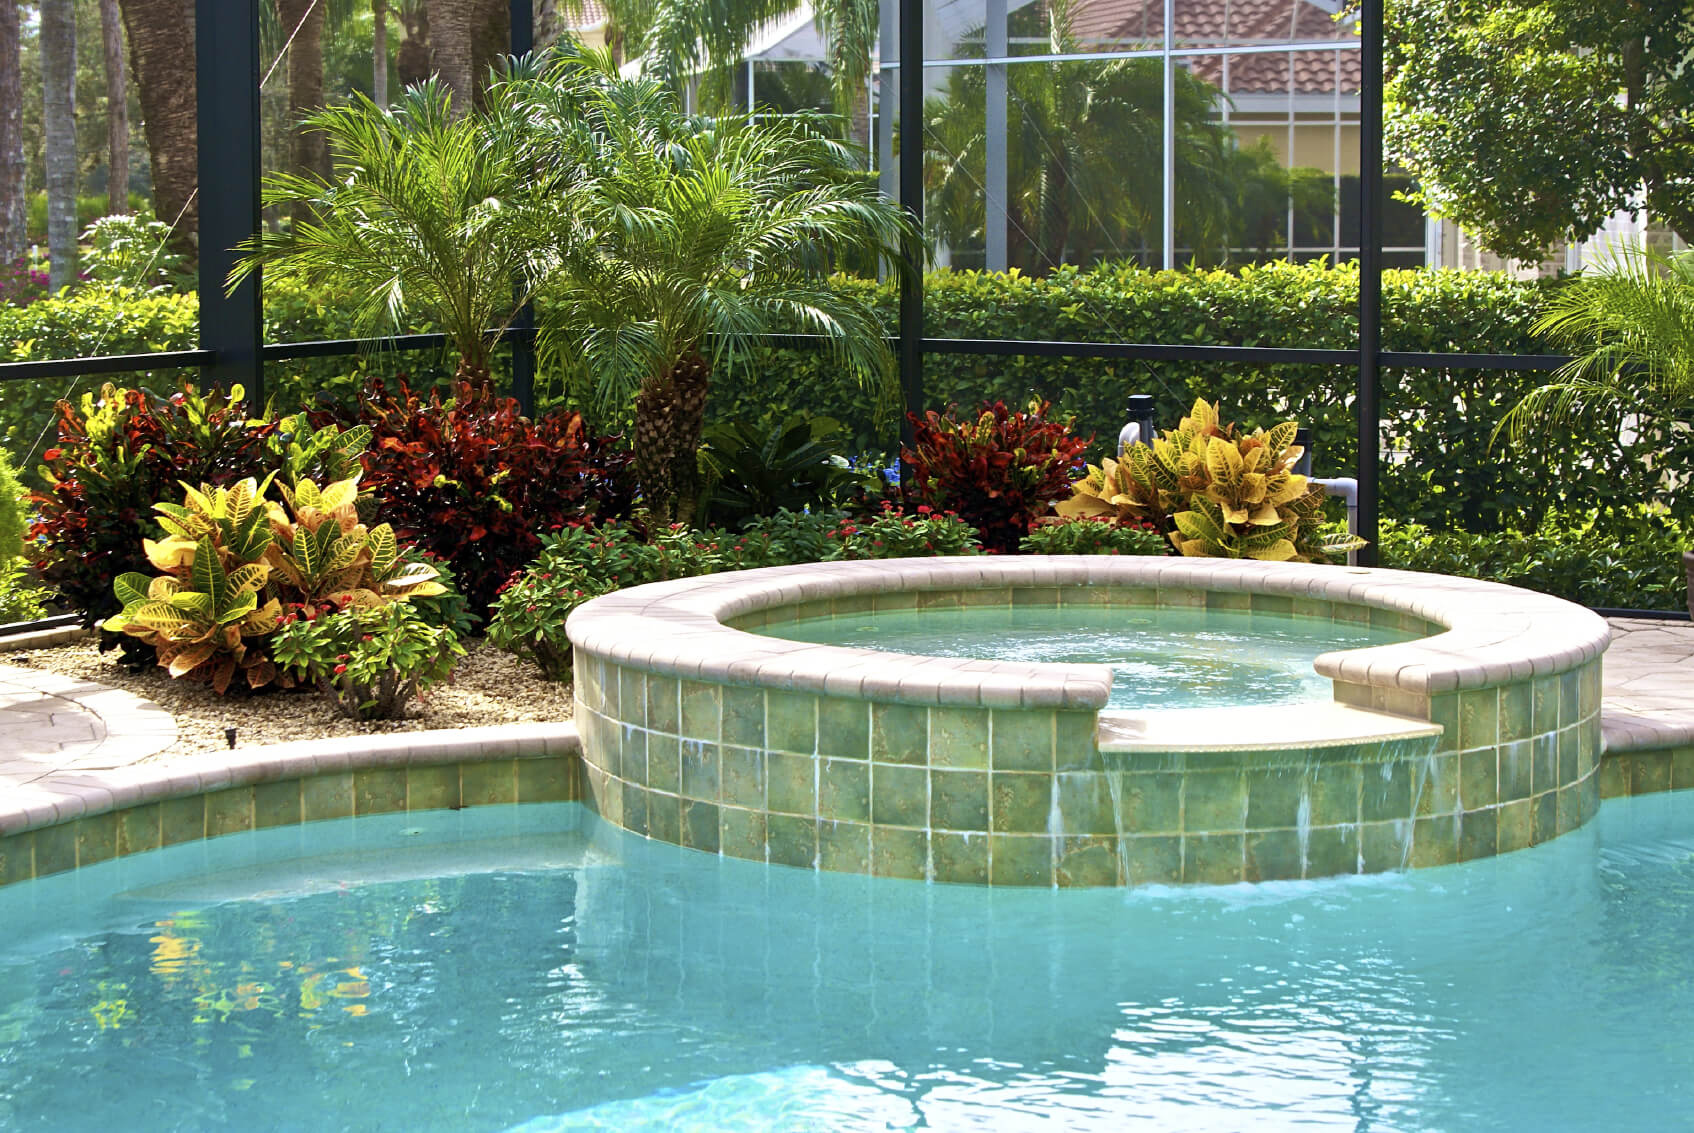 Greenery is the perfect companion to a hot tub. As you let the warm water take you away, it is nice to be surrounded by nature, and the soothing atmosphere that a lovely garden can provide.